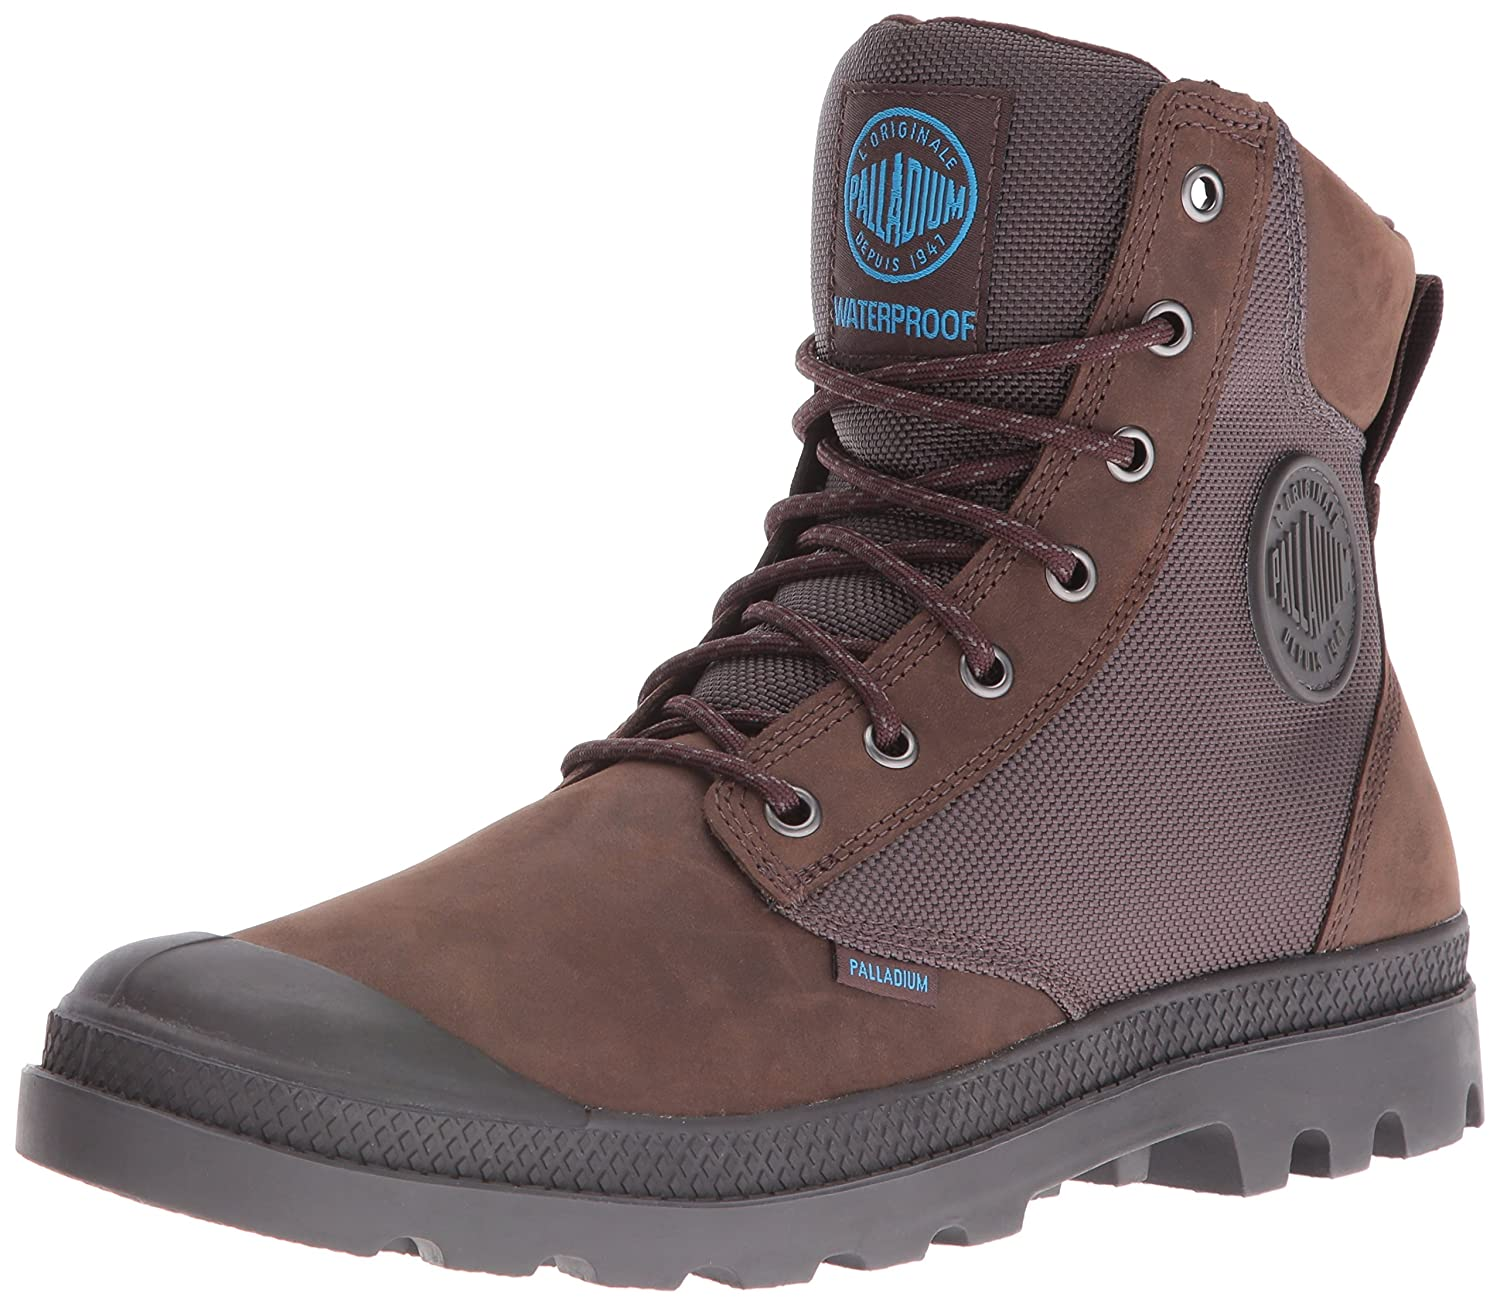 Palladium Men's Pampa Sport Cuff Wpn Rain Boot B01A9PZ5XC 11 D(M) US|Chocolate/Forged Iron